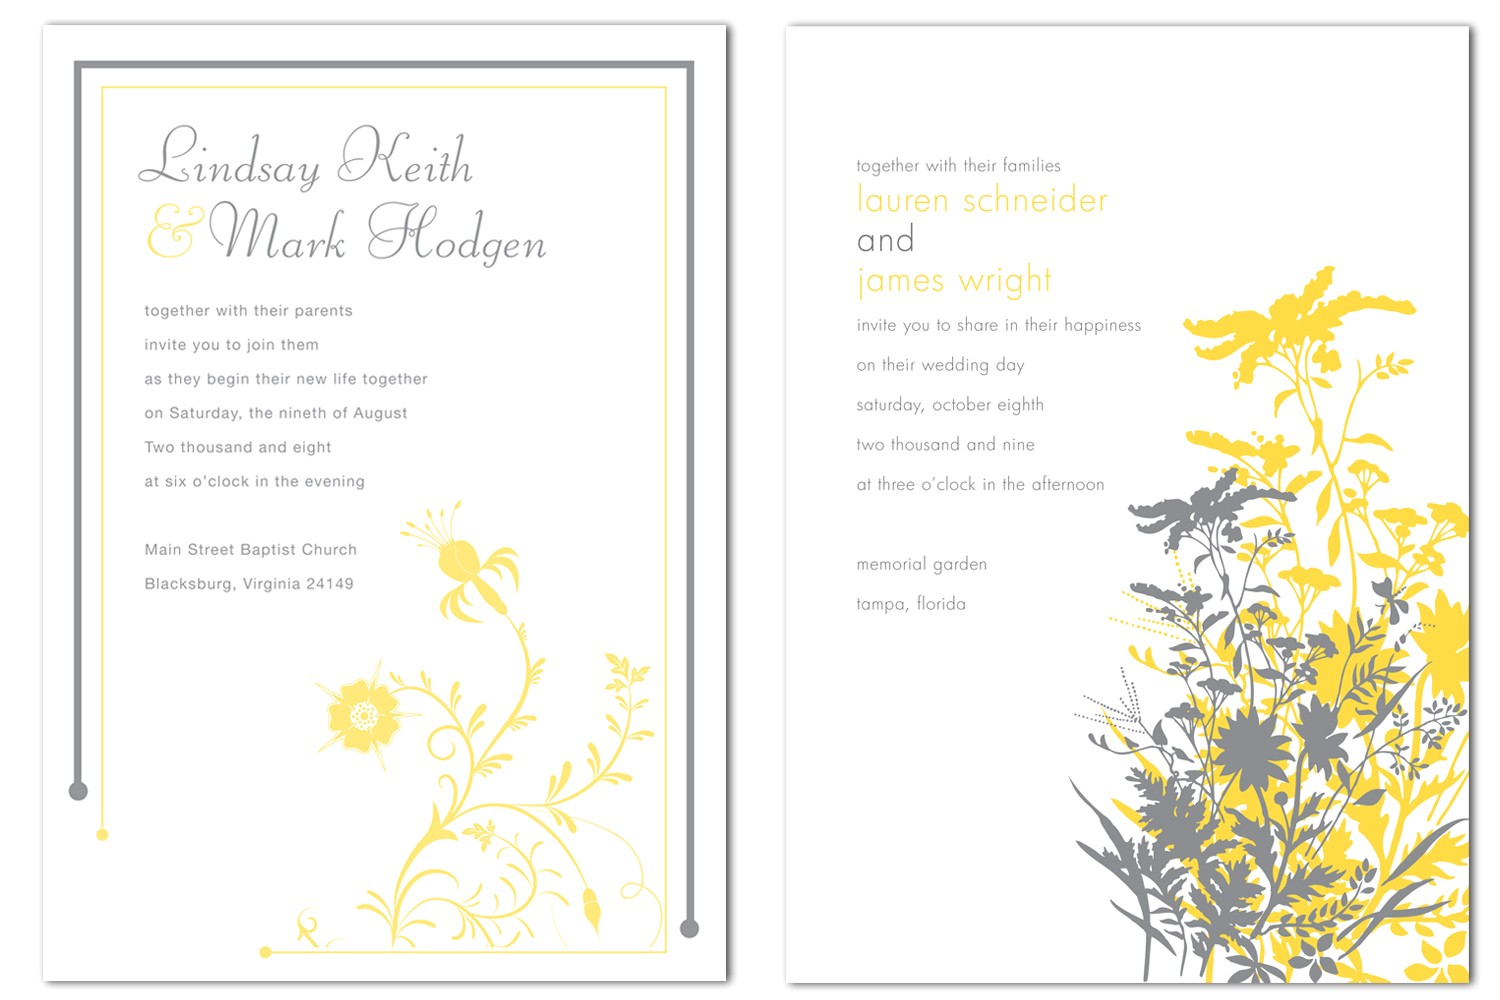 inside look wedding invitations